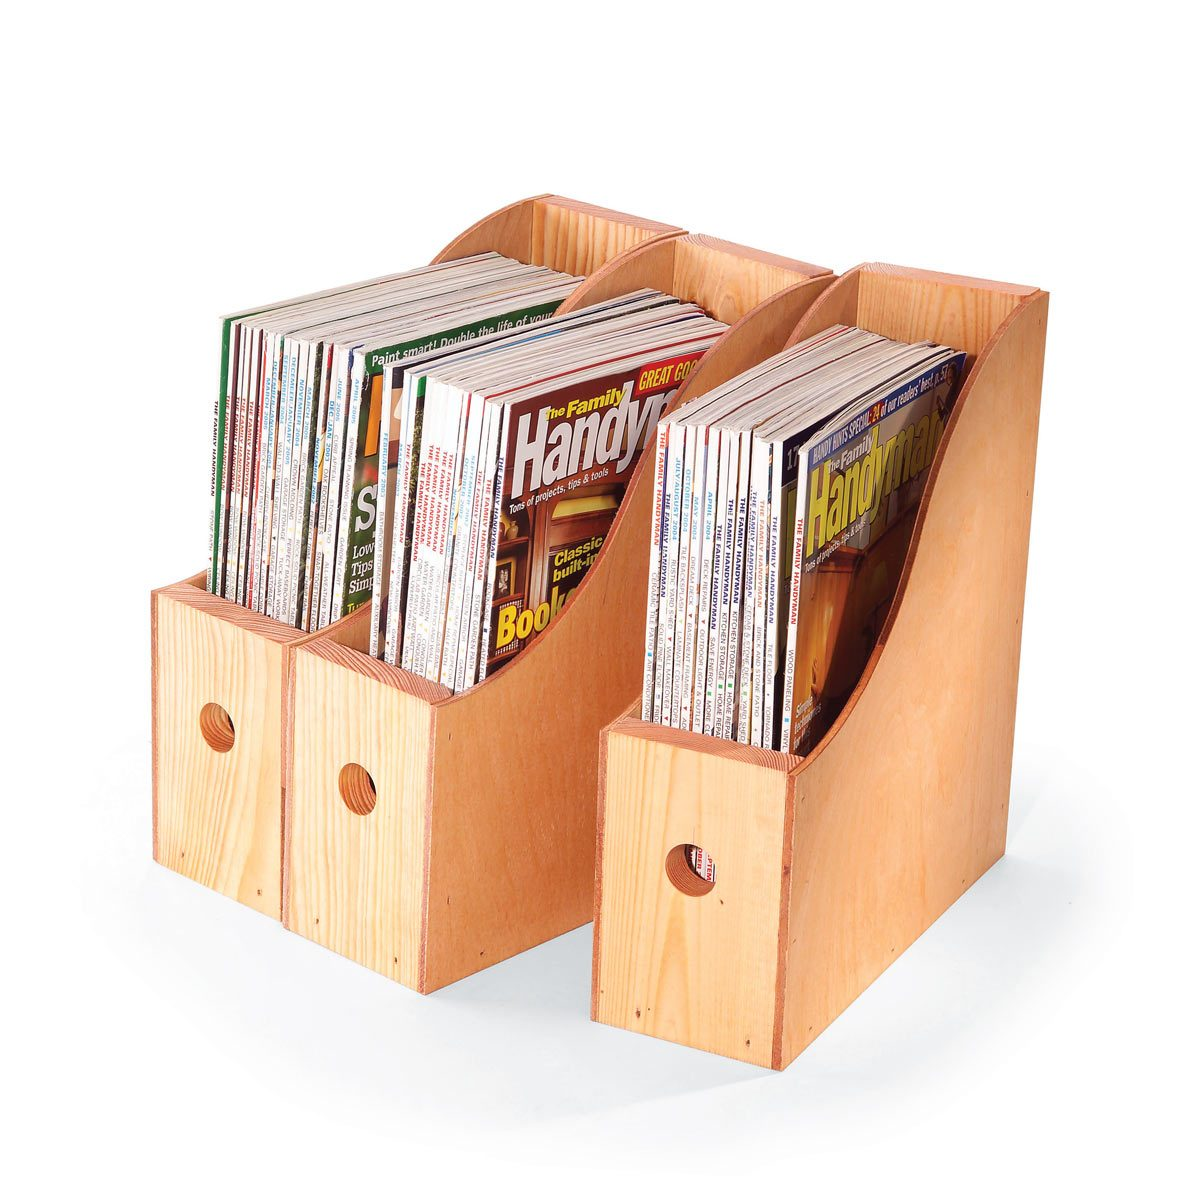 Periodicals but not The Family Handyman